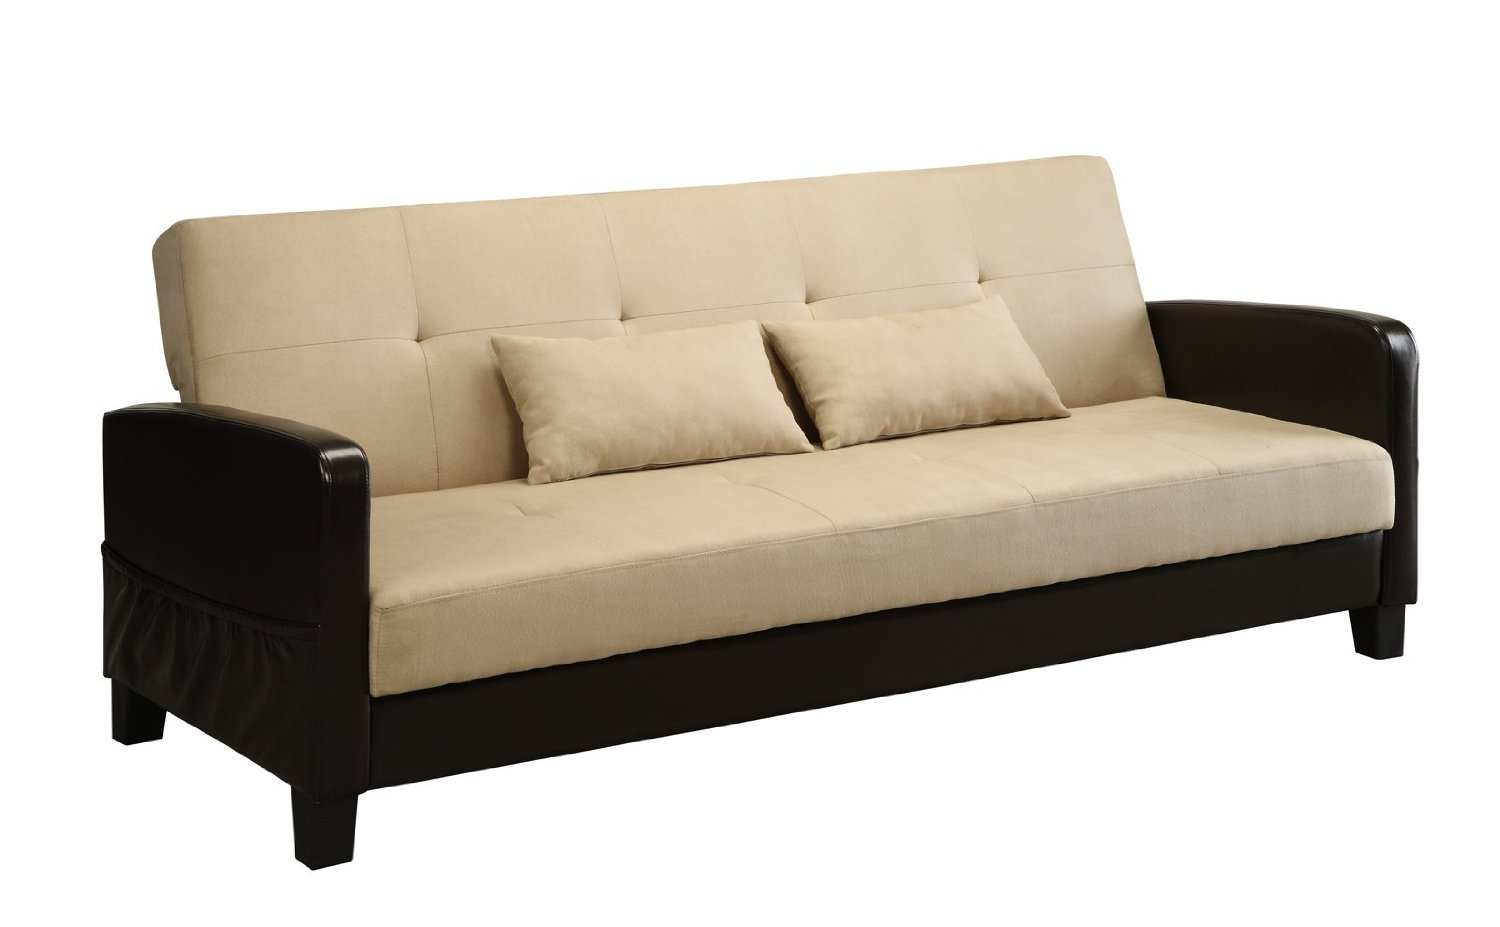 DHP Vienna Sofa Sleeper With 2 Pillows ...